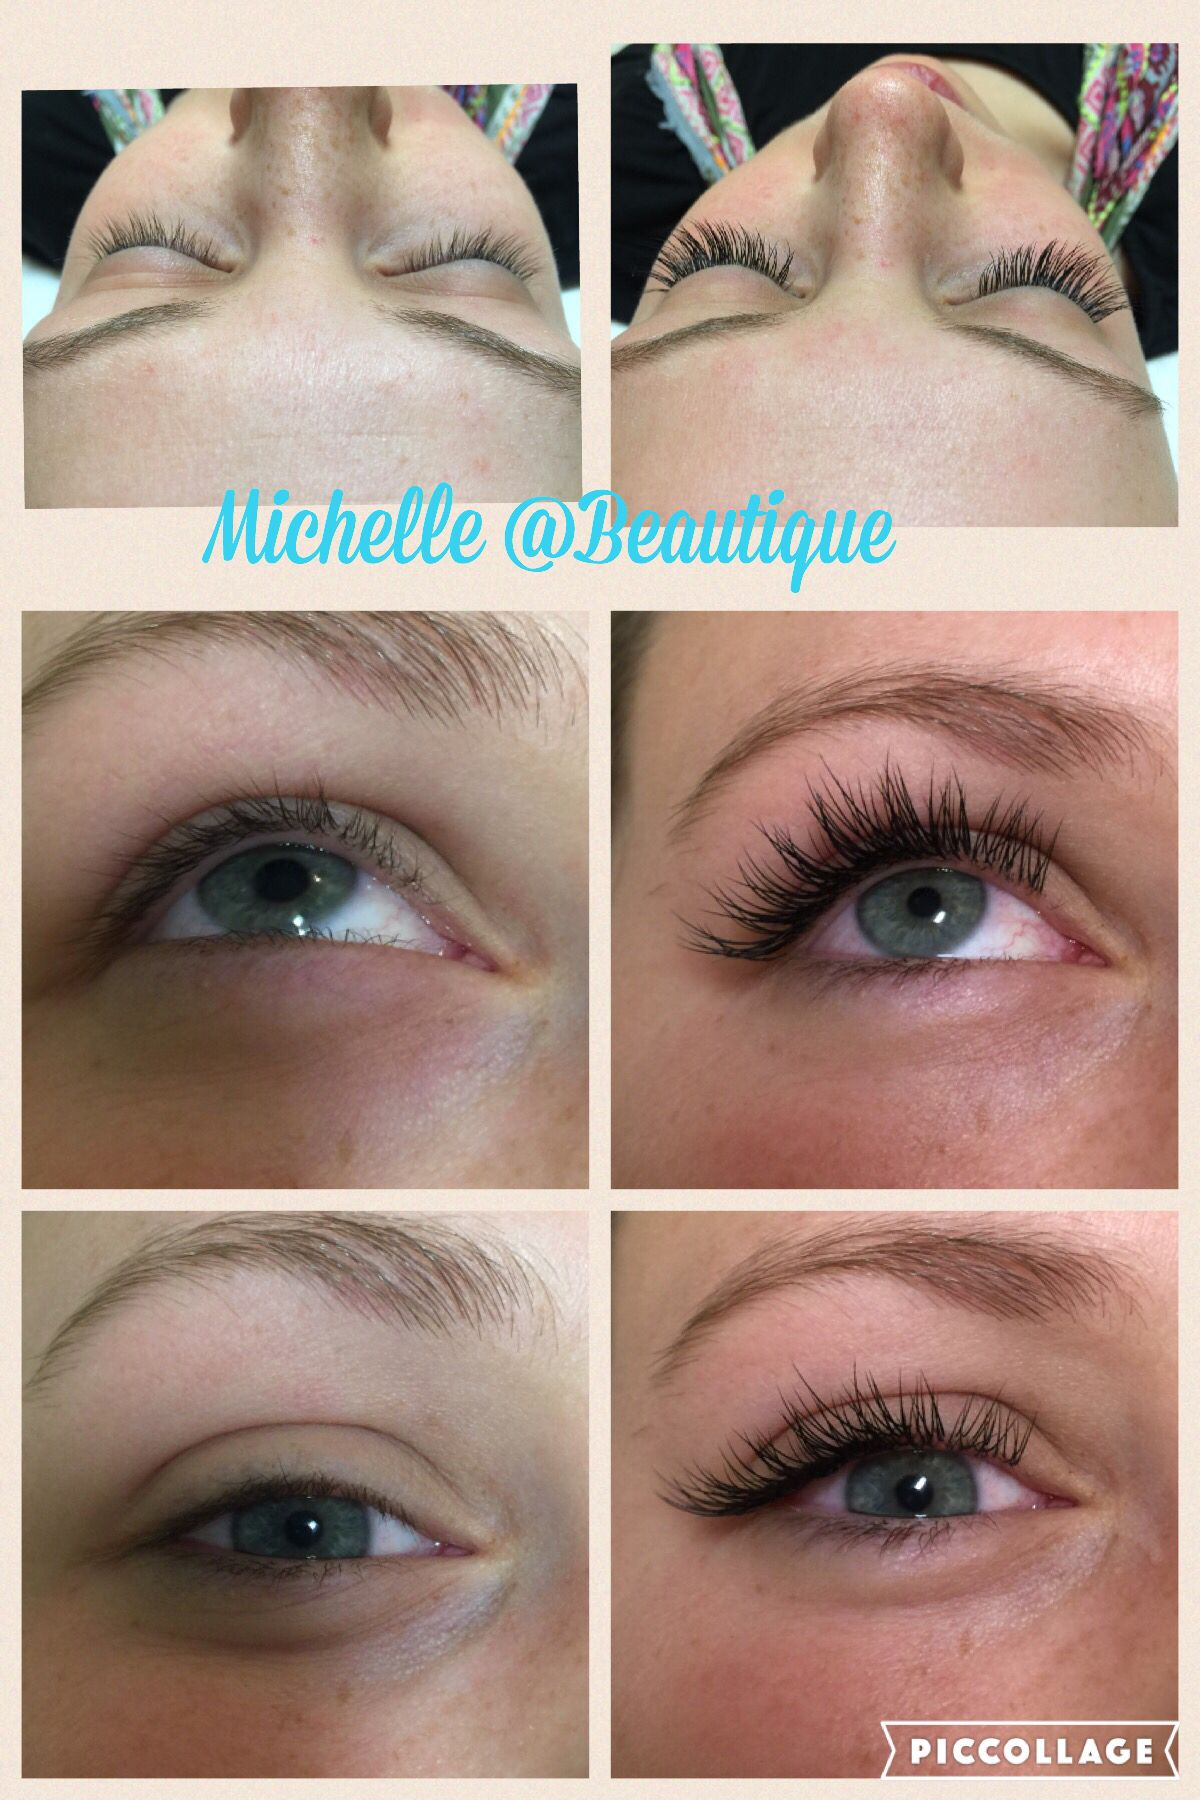 Views Of Lash Extensions Im In Love With Nova Minx Lashes